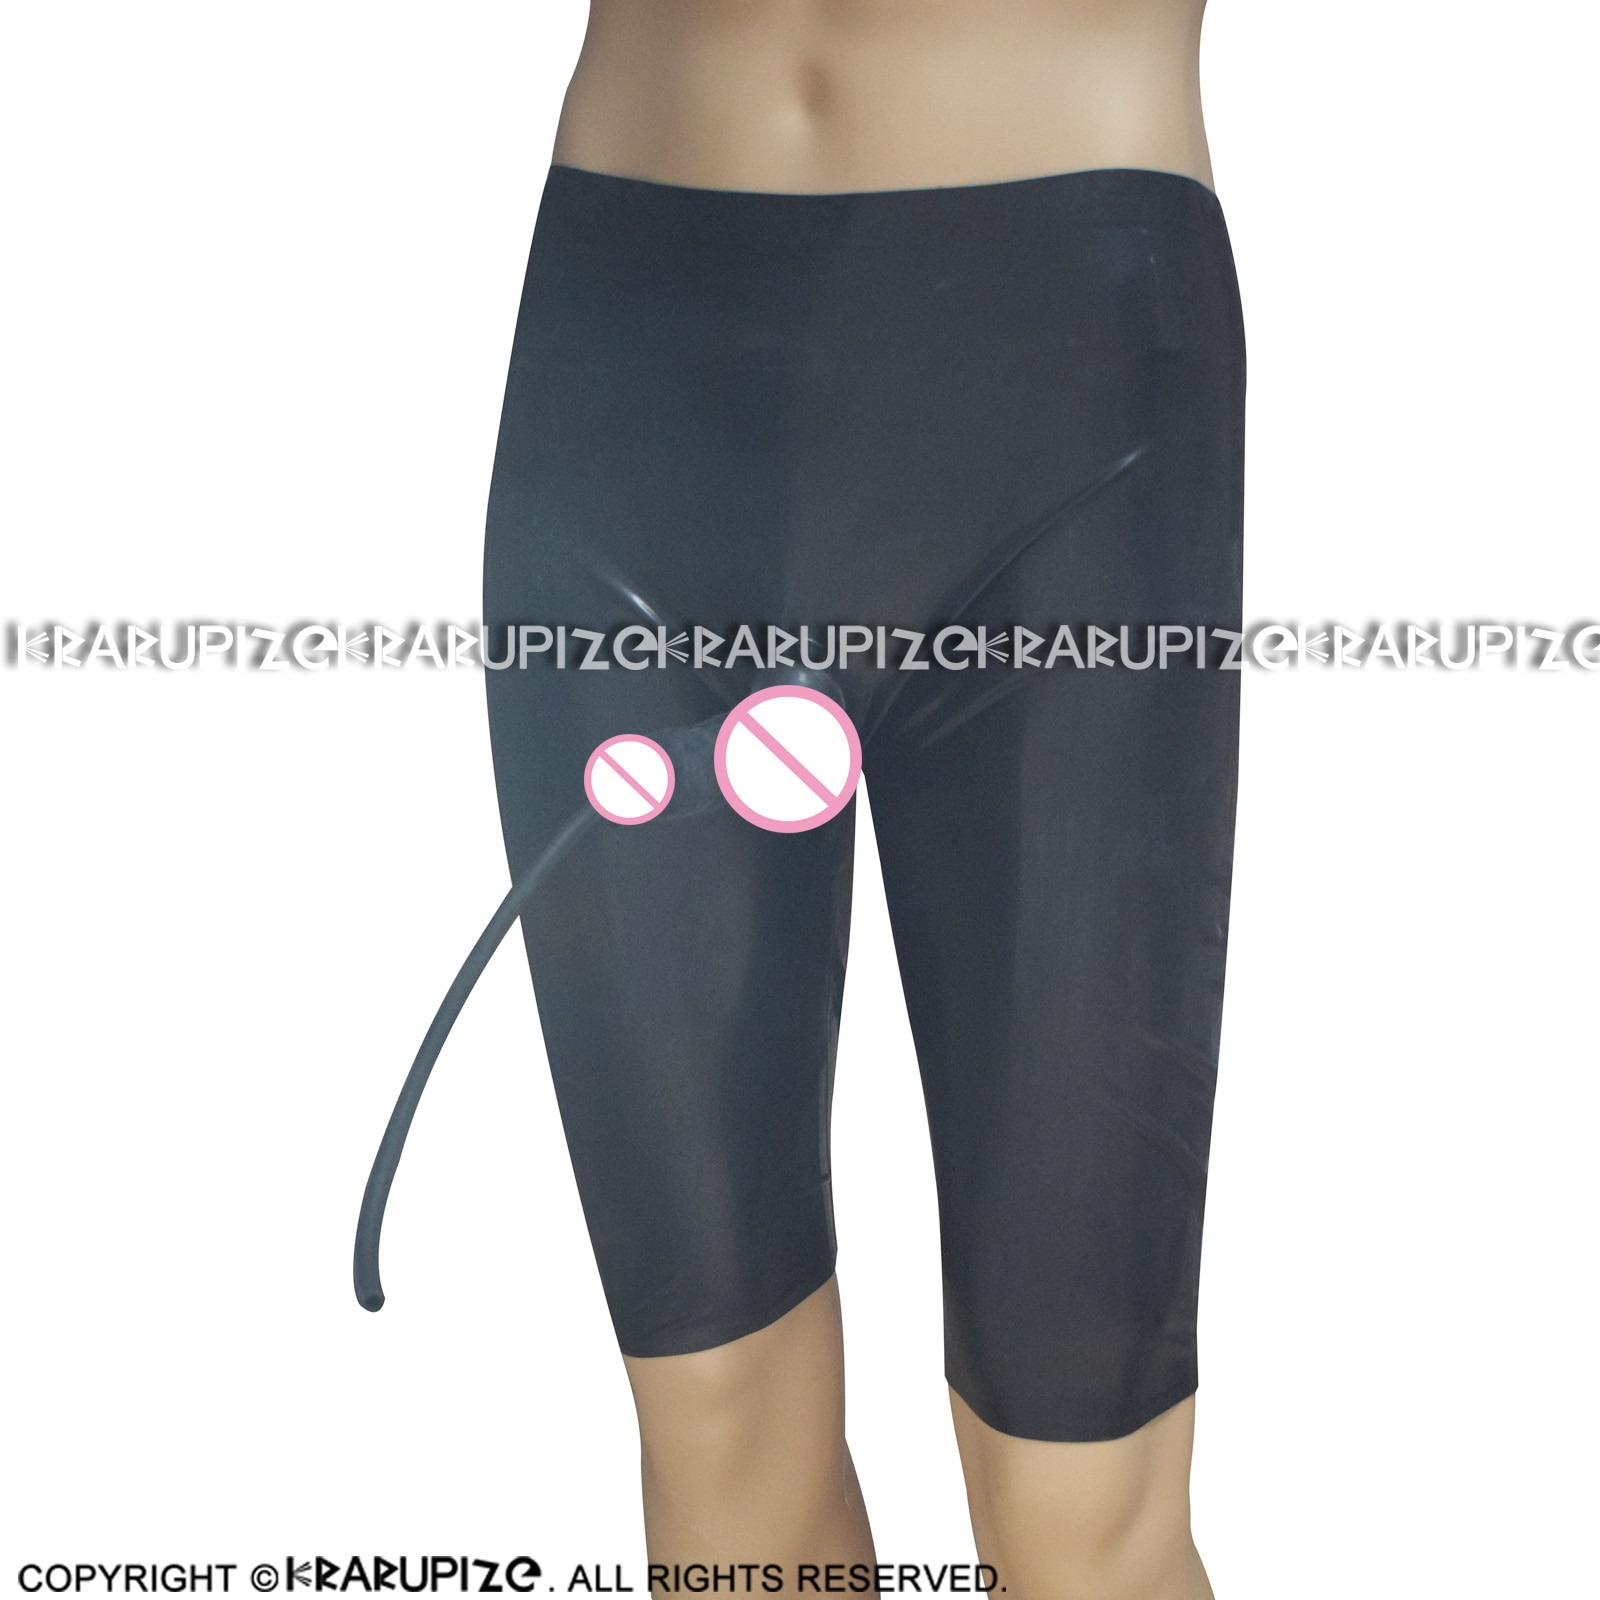 Black Latex Long Leg Boxer Shorts With Anatomical Penis Sheath And Piss Tube Rubber Underwear DK-0200